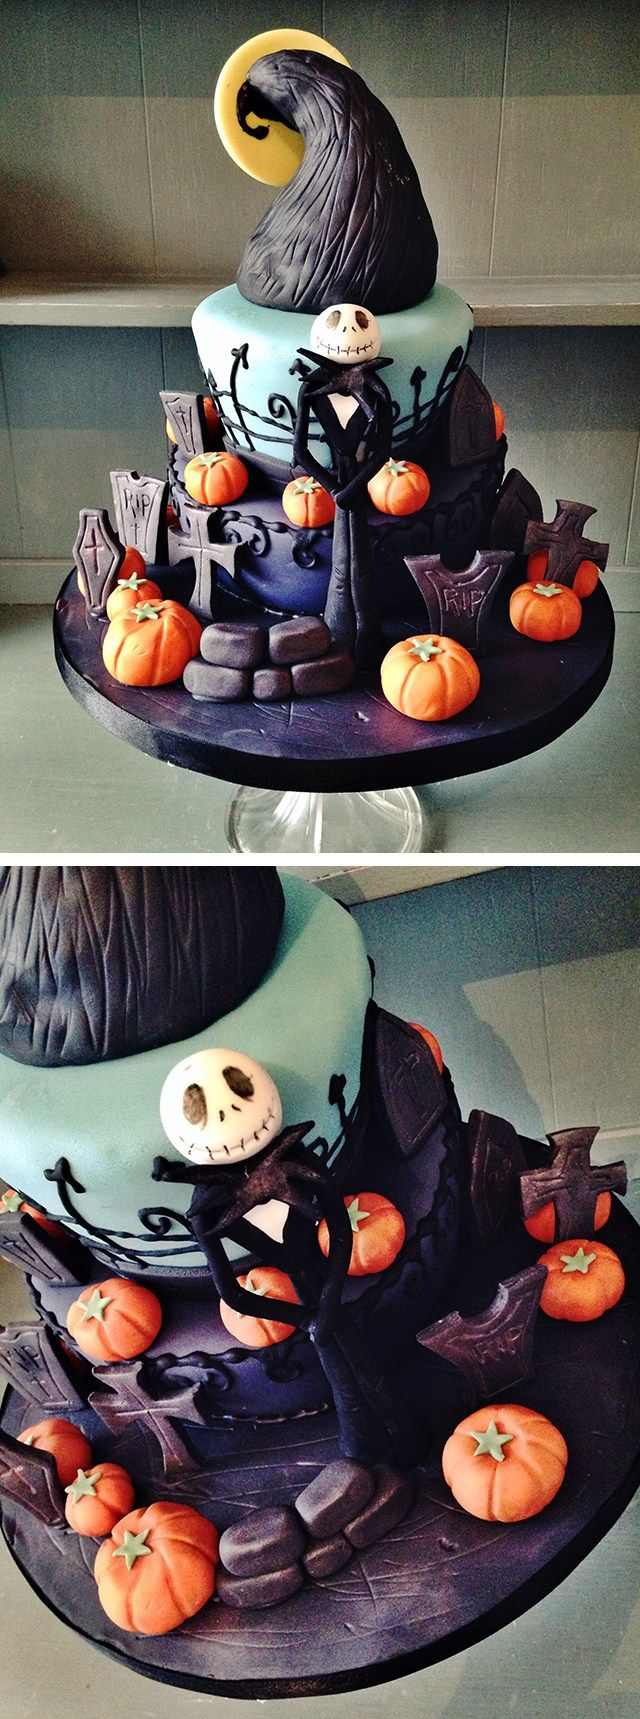 Halloween Cakes & how to make edible blood   Halloween cakes and ...